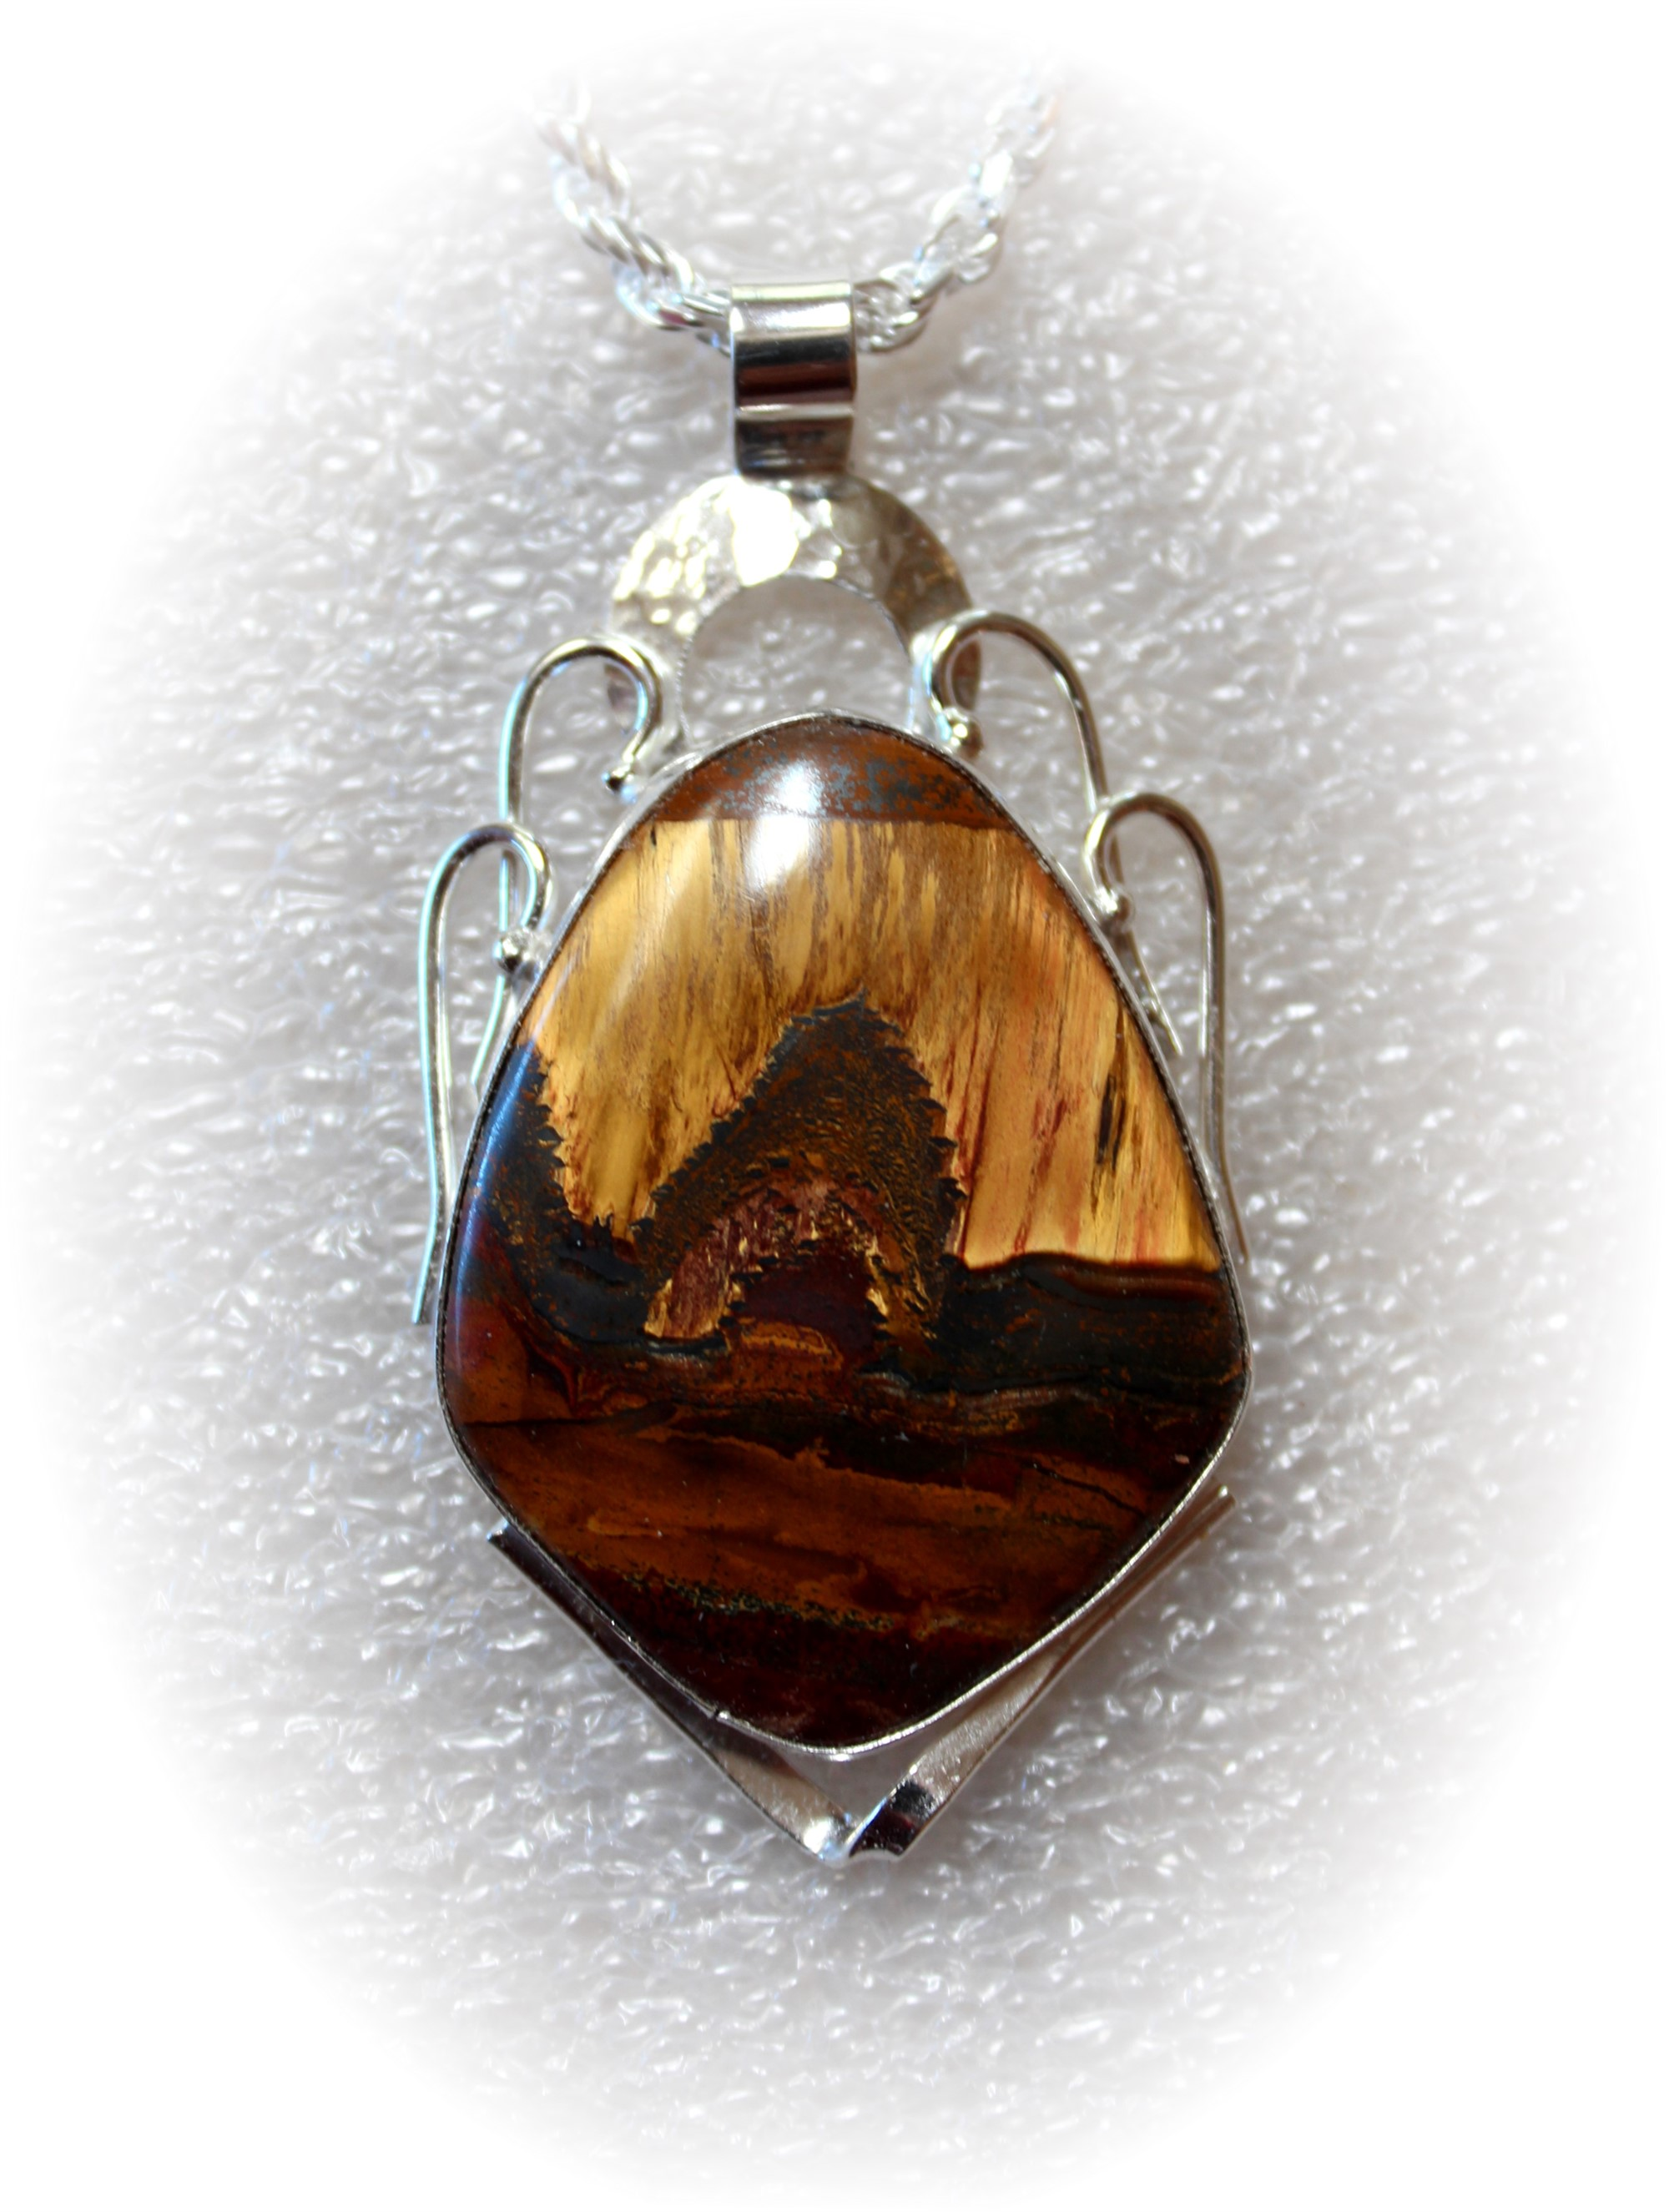 Marramamba Pendant on Sterling Silver Chain by Michael Redhawk